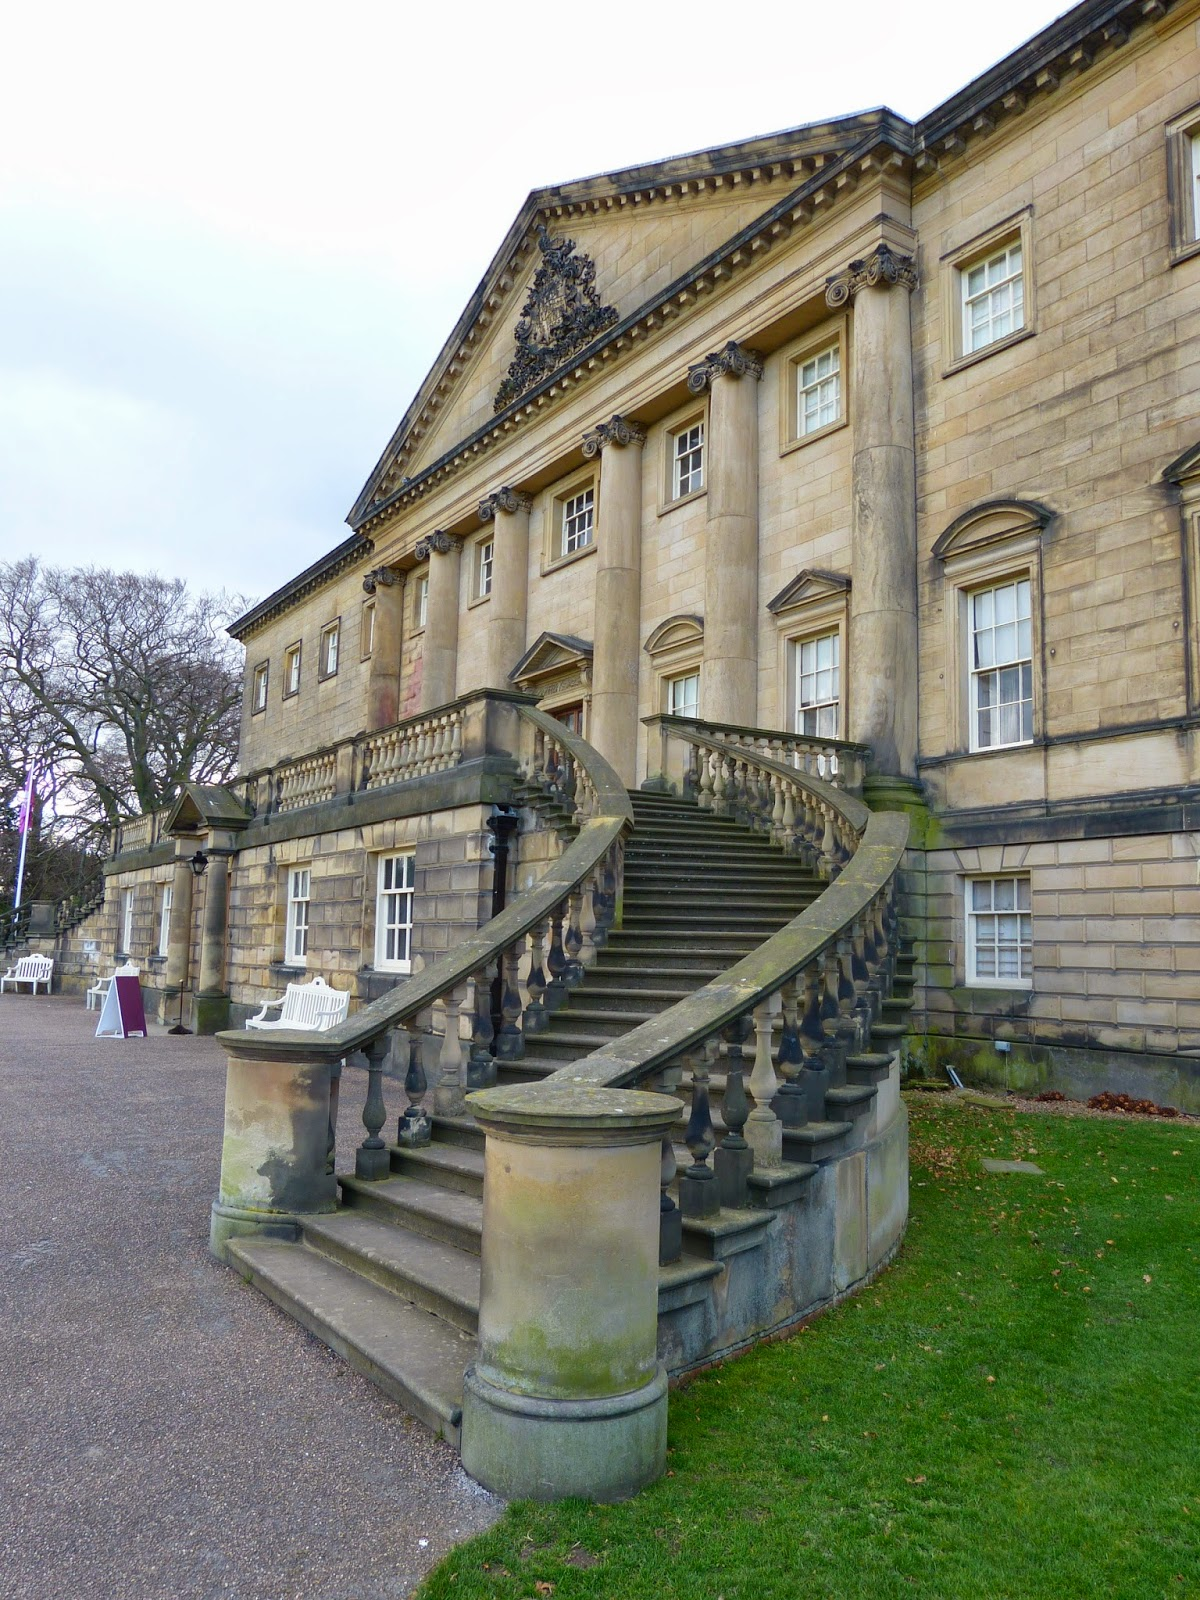 Robert Adam's sweeping stairway leading  to the first floor entrance hall of Nostell Priory